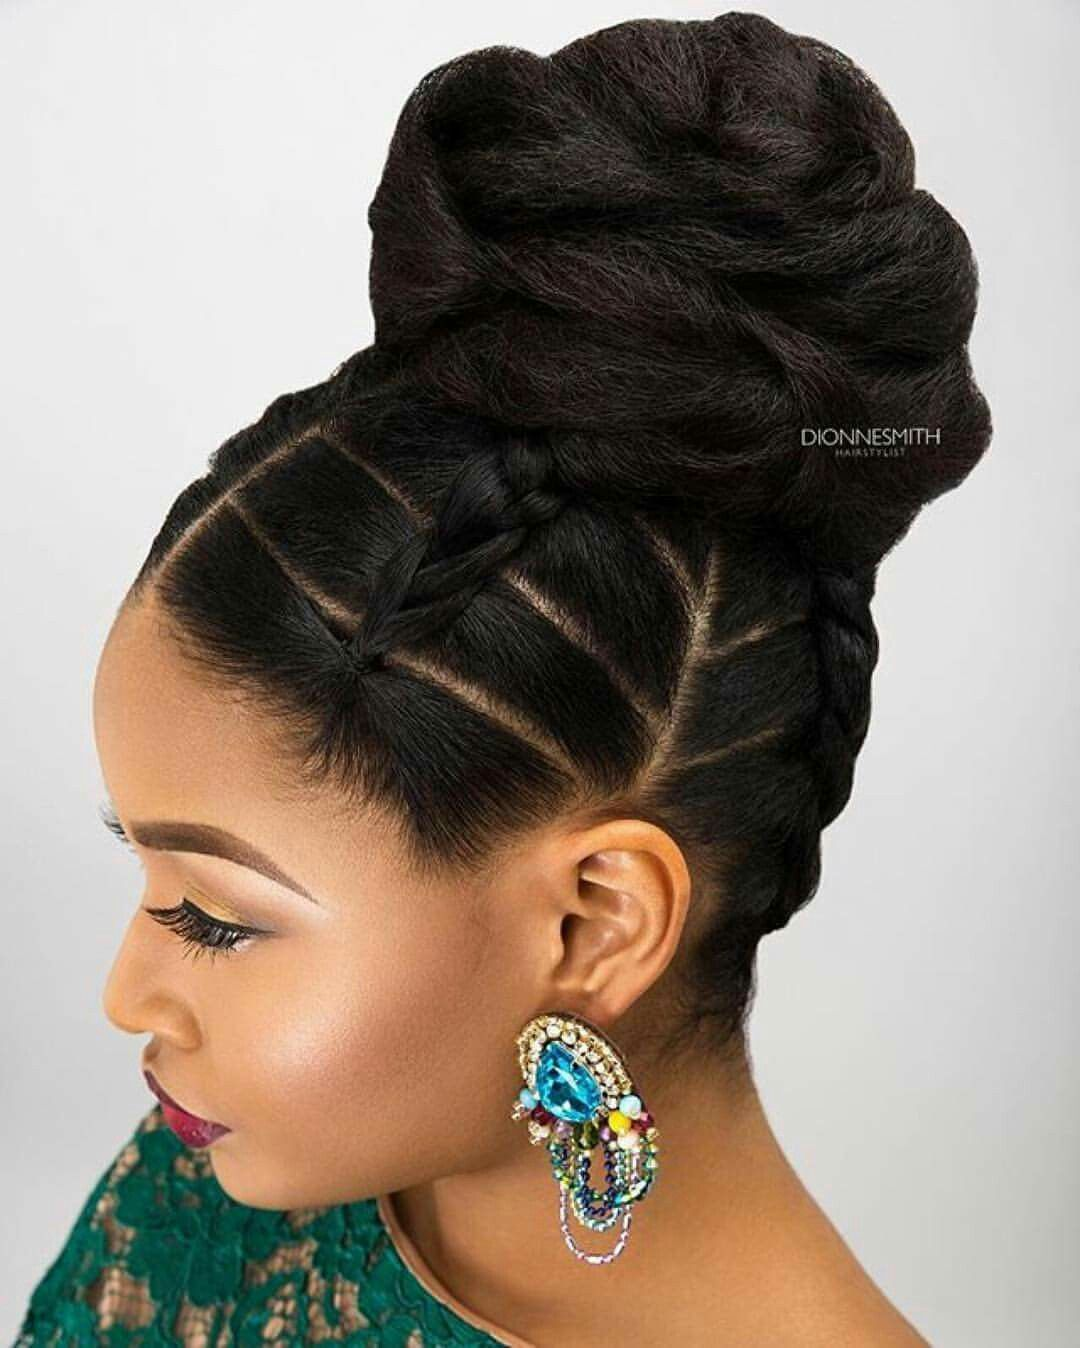 Dionnesmithhair Other Ways To Create Elegant But Interesting